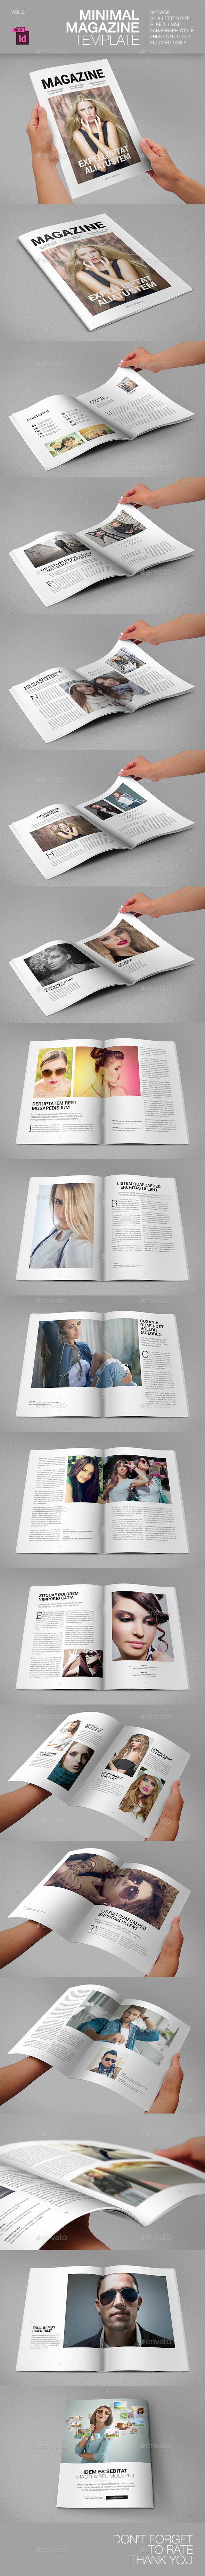 GraphicRiver Minimal Magazine Template 9228003